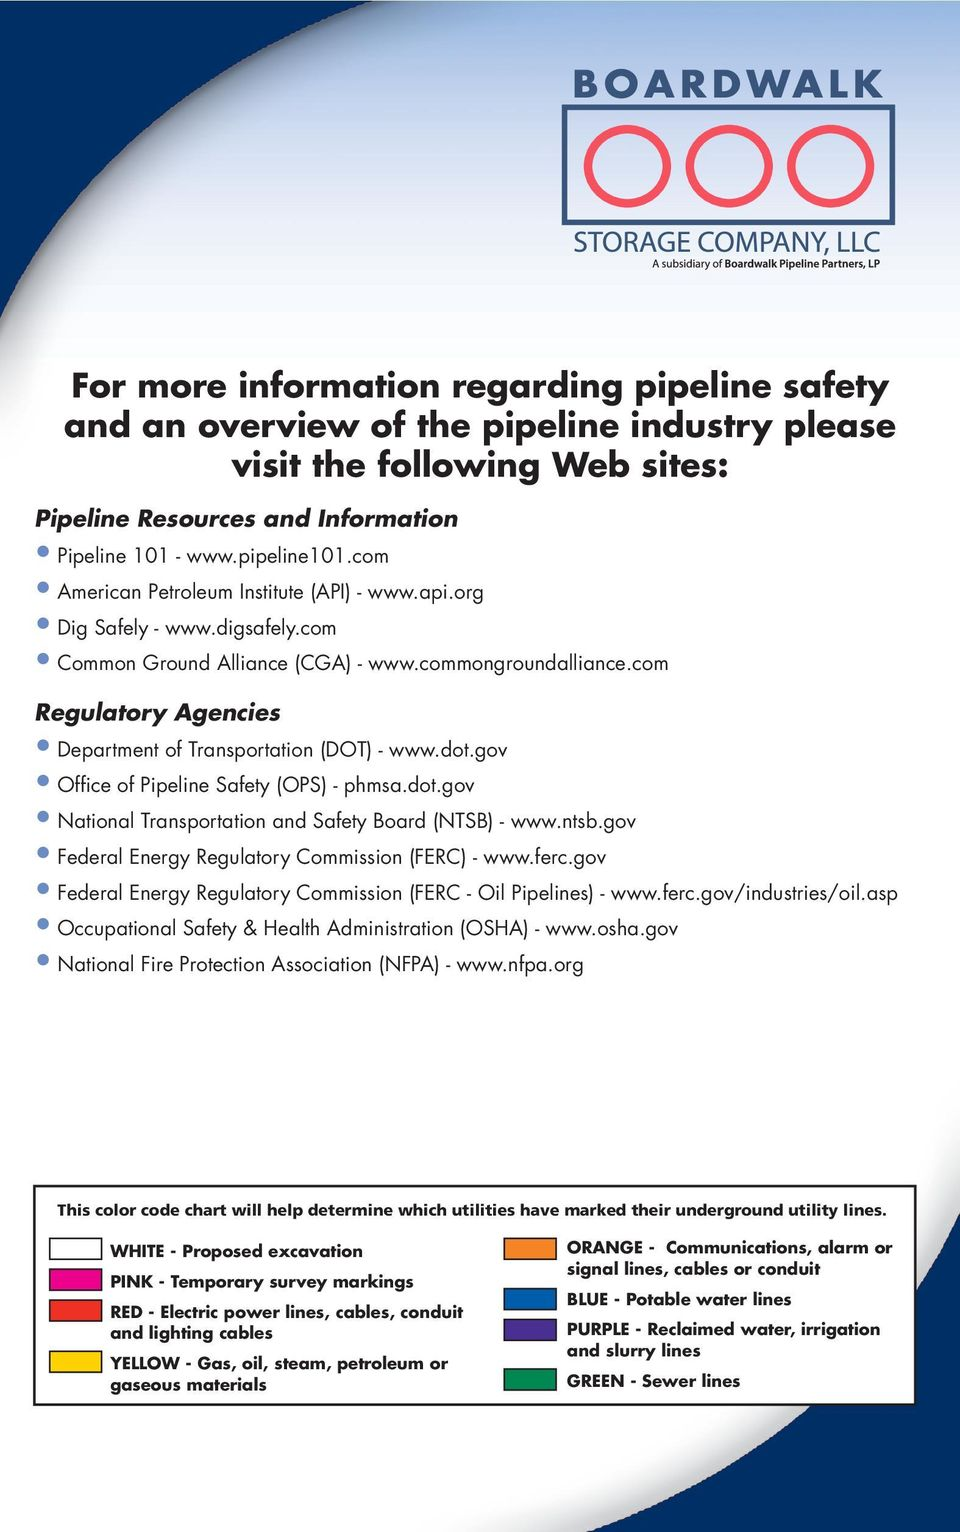 com Regulatory Agencies Department of Transportation (DOT) - www.dot.gov Office of Pipeline Safety (OPS) - phmsa.dot.gov National Transportation and Safety Board (NTSB) - www.ntsb.